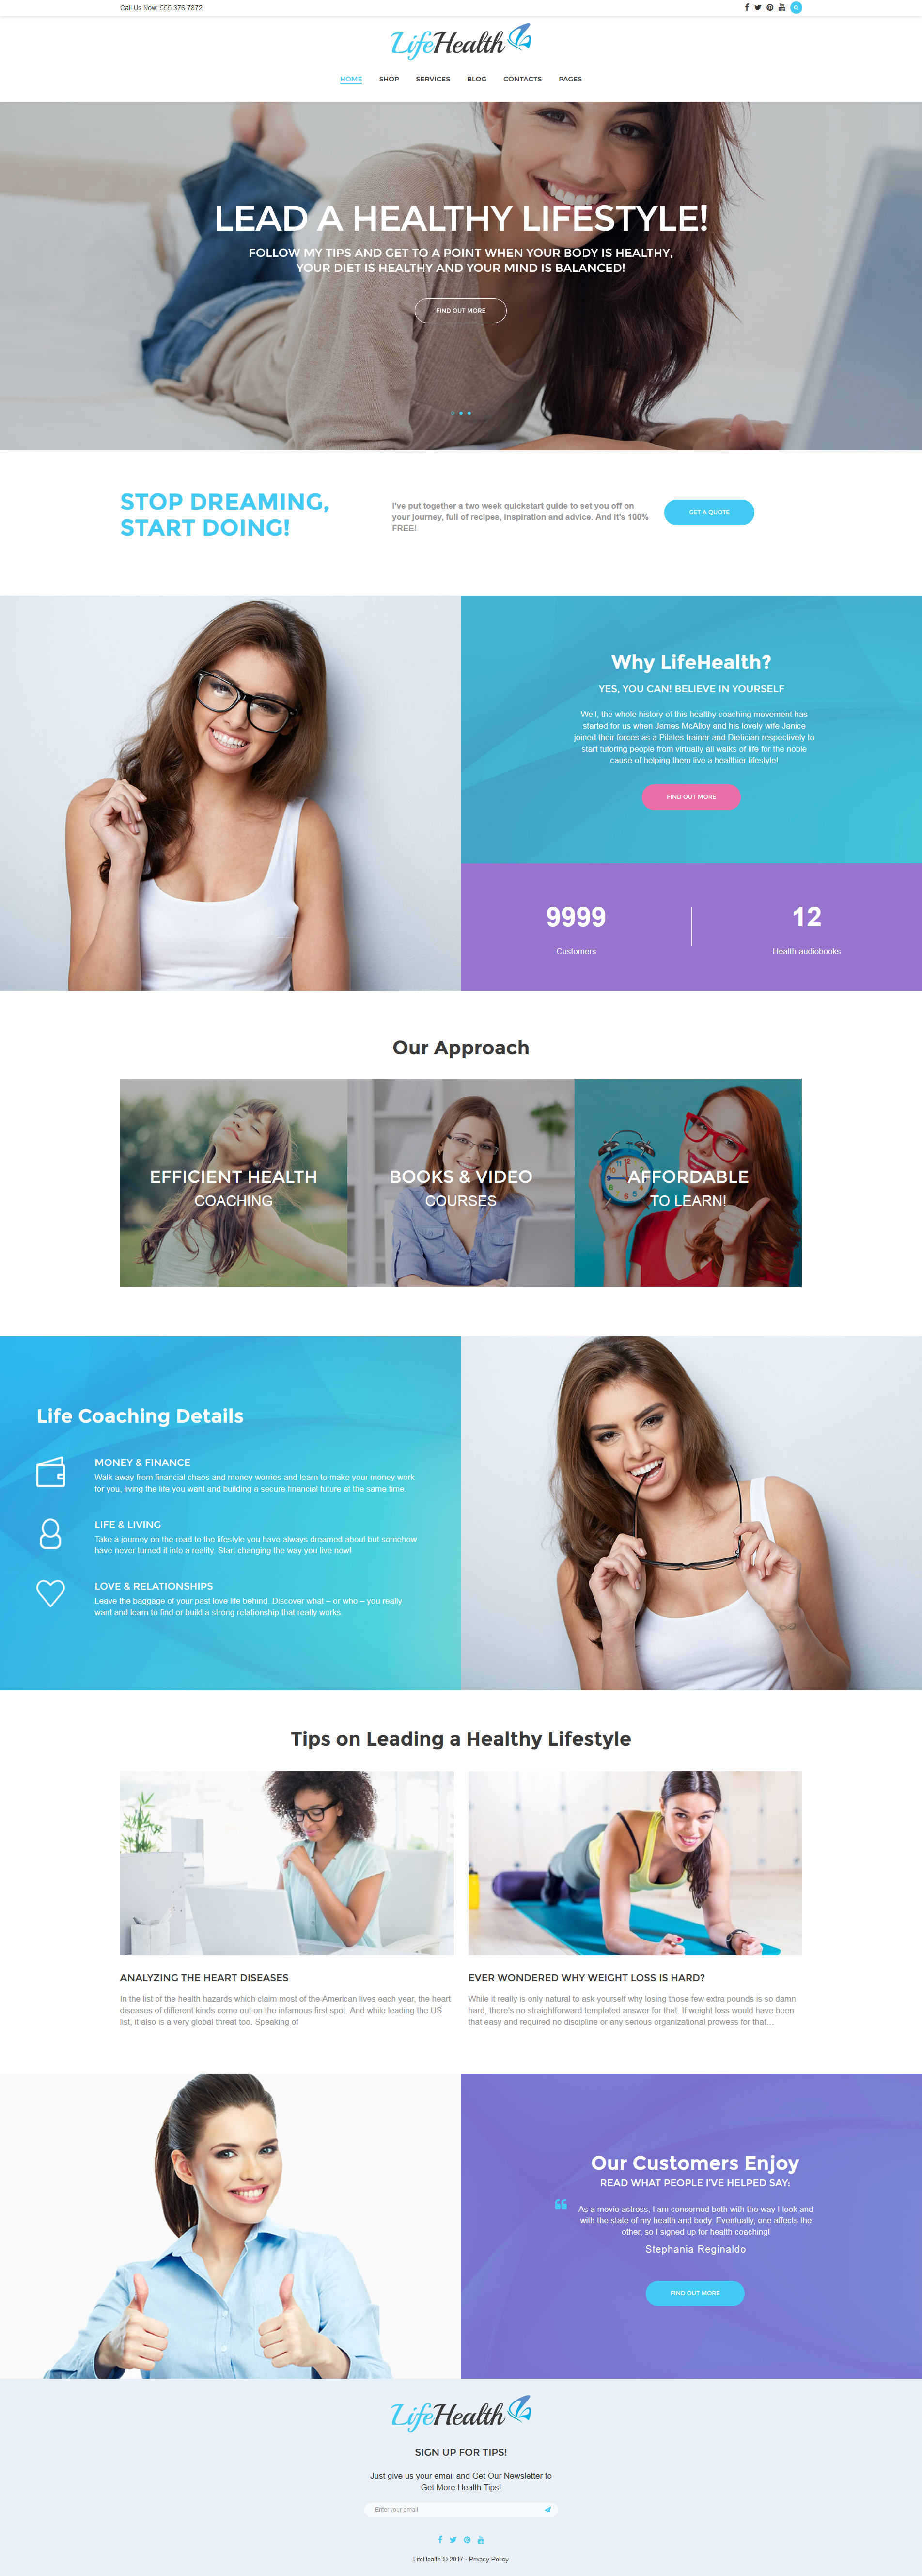 LifeHealth - Healthy Lifestyle Coach Responsive WordPress Theme - screenshot